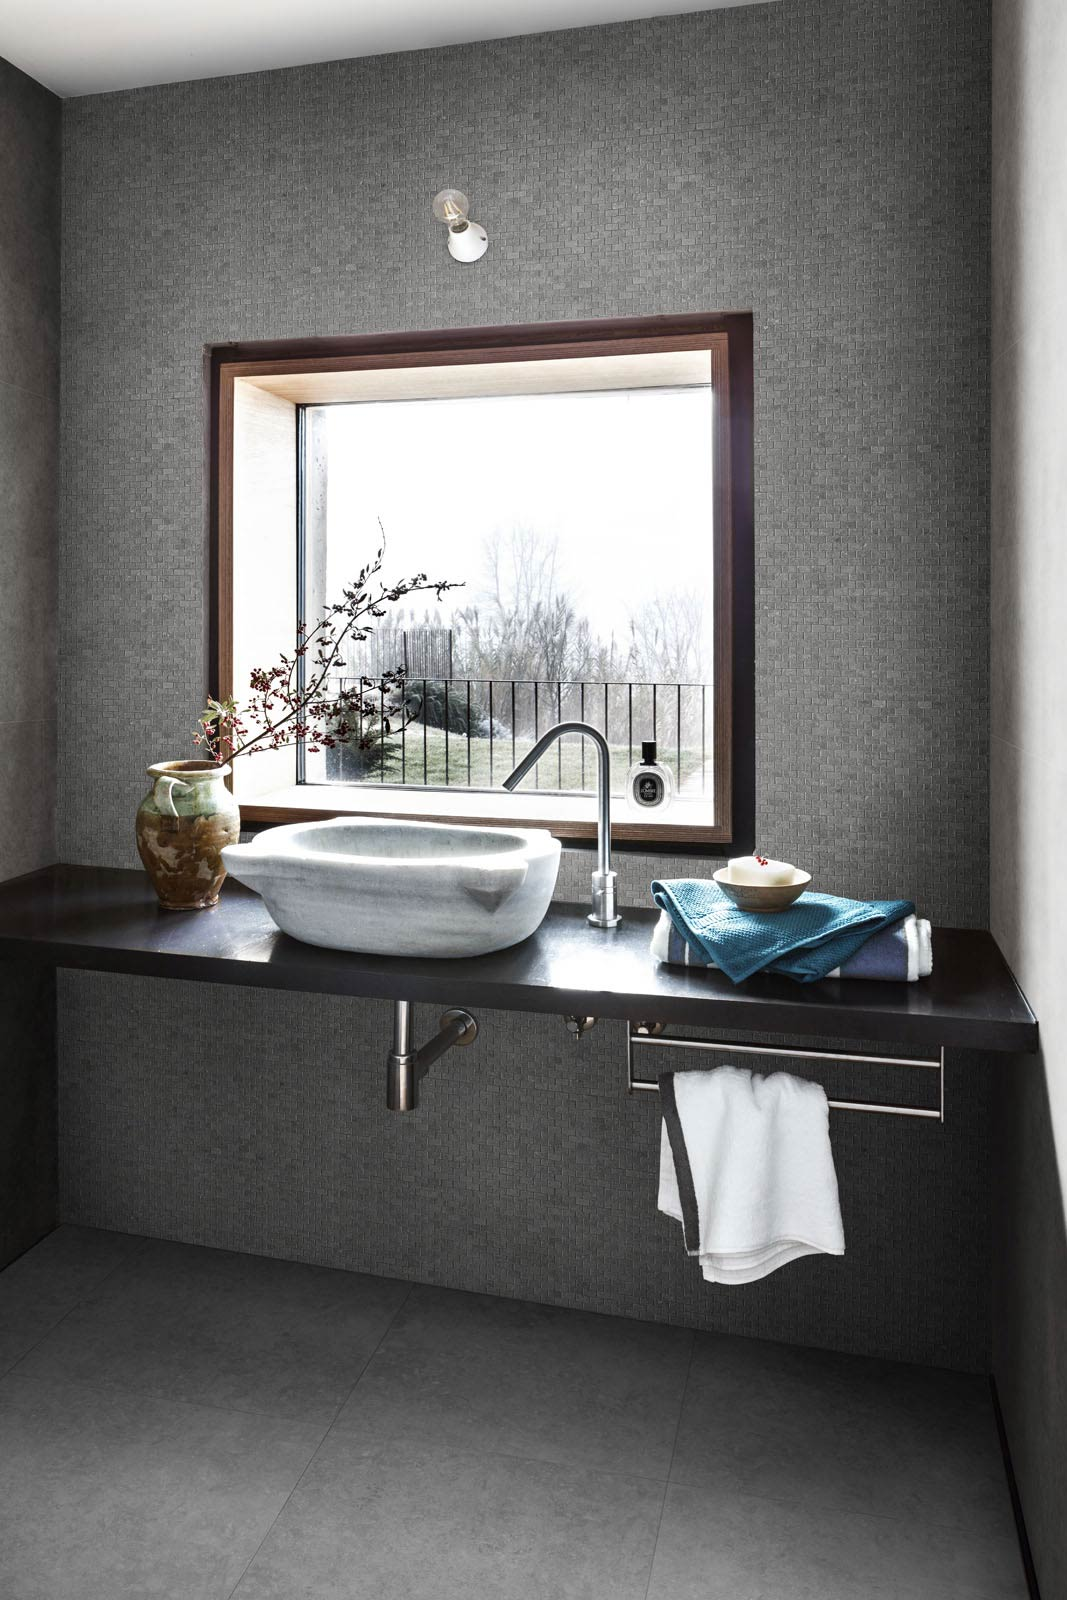 Images for bathroom tiles - Bathroom Tiles Ceramic And Porcelain Stoneware Marazzi 8017